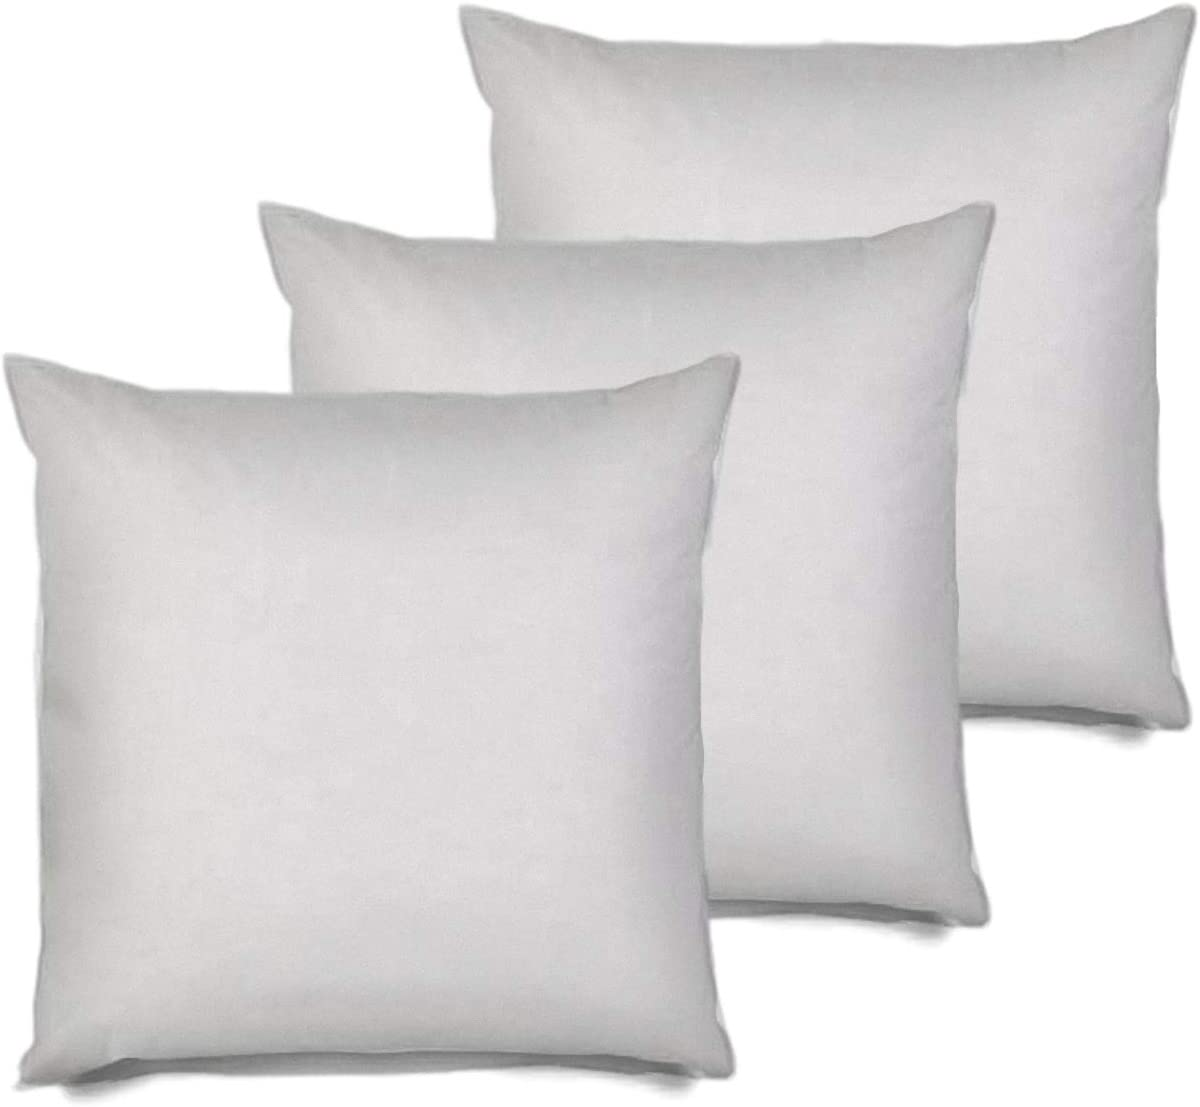 MSD 3 Pack Pillow Insert 30X30 Hypoallergenic Square Form Sham Stuffer Standard White Polyester Decorative Euro Throw Pillow Inserts for Sofa Bed - Made in USA (Set of 3) - Machine Washable and Dry